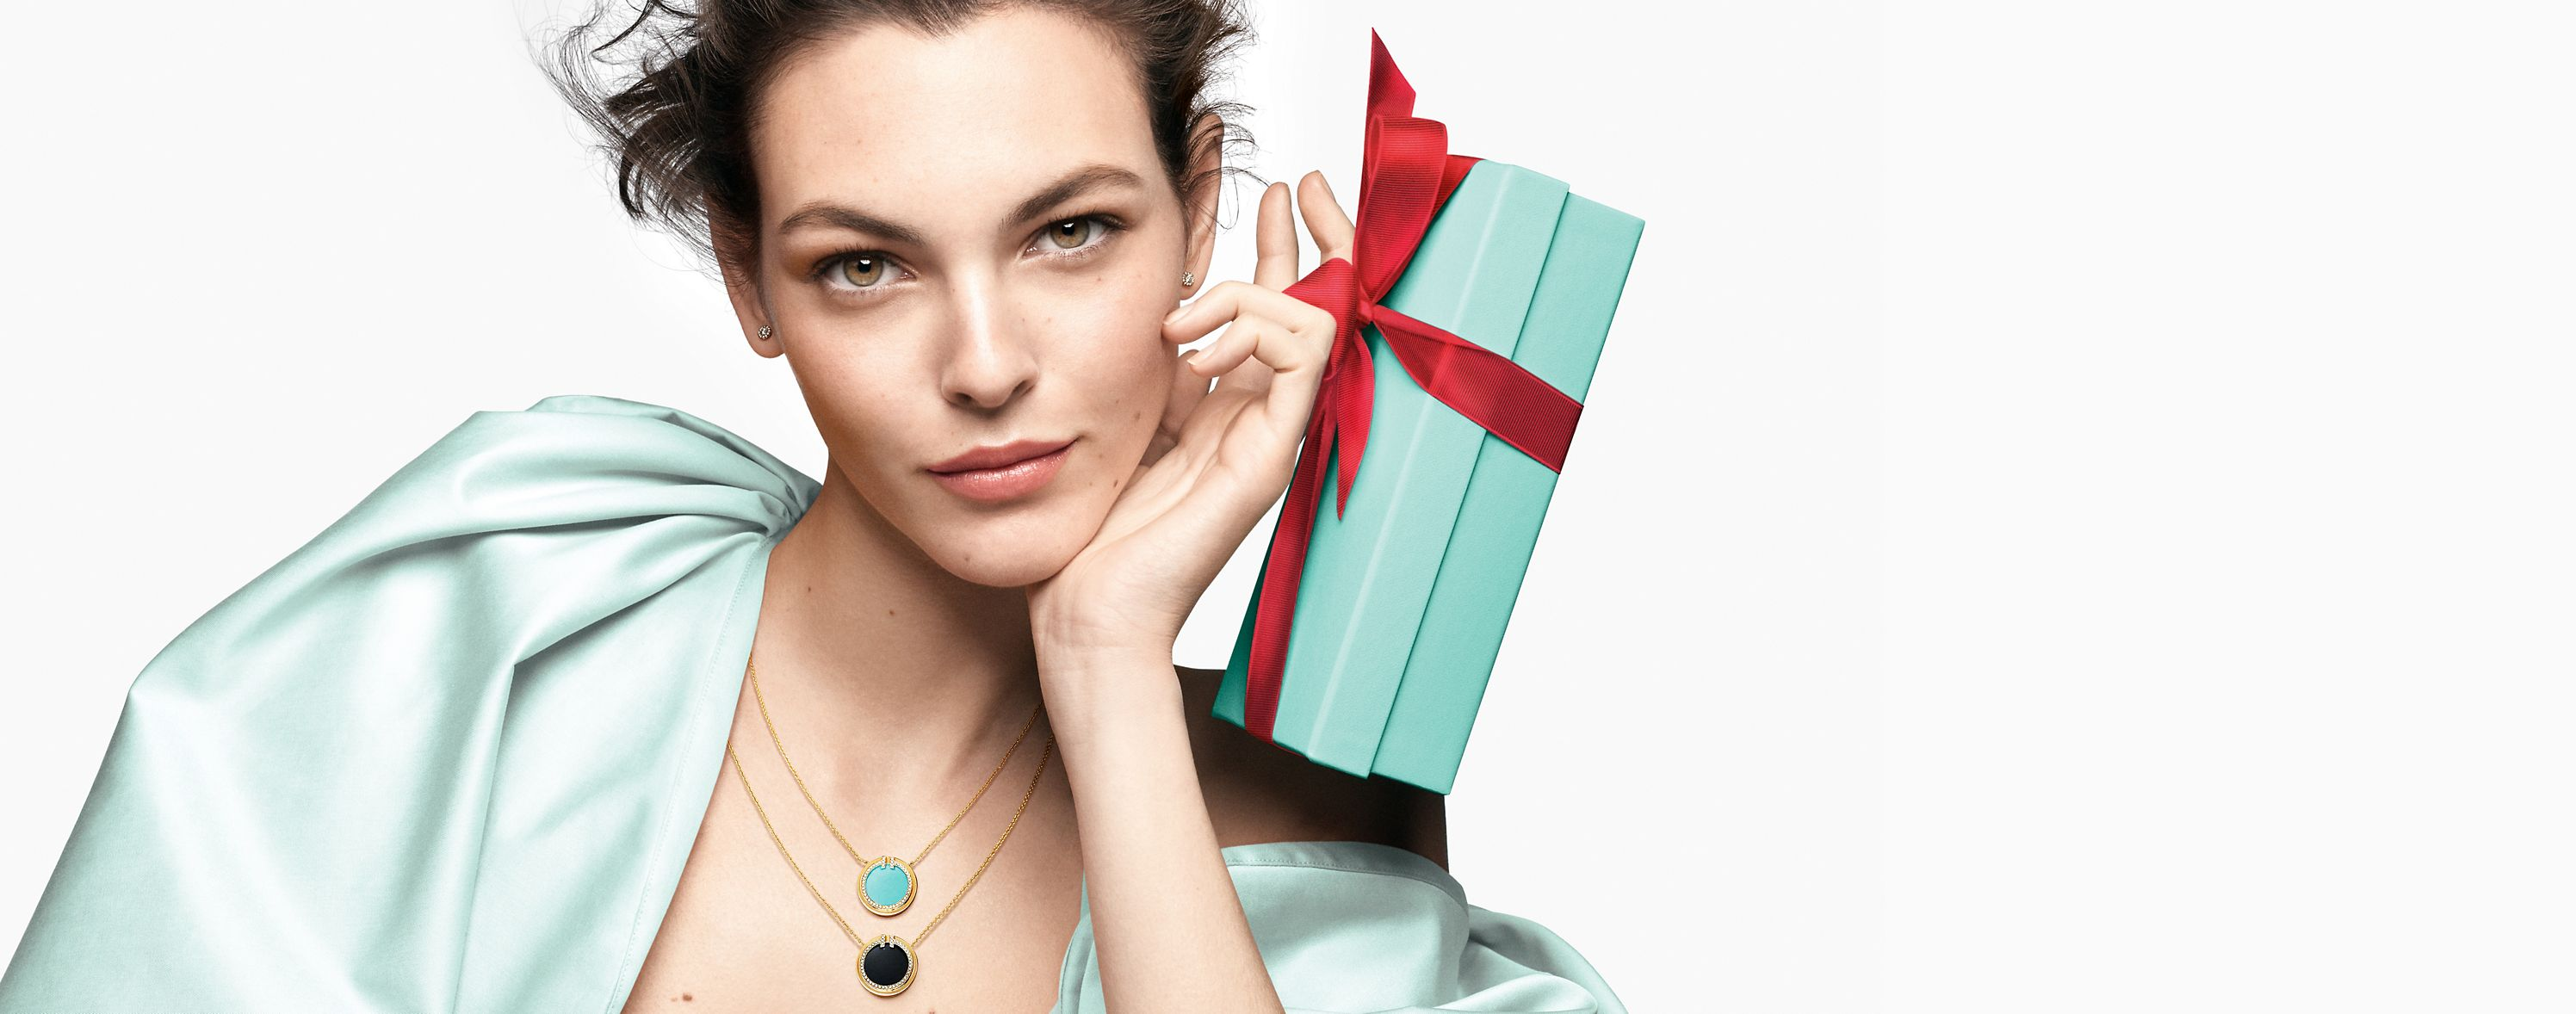 Shop Tiffany & Co. Holiday Gifts